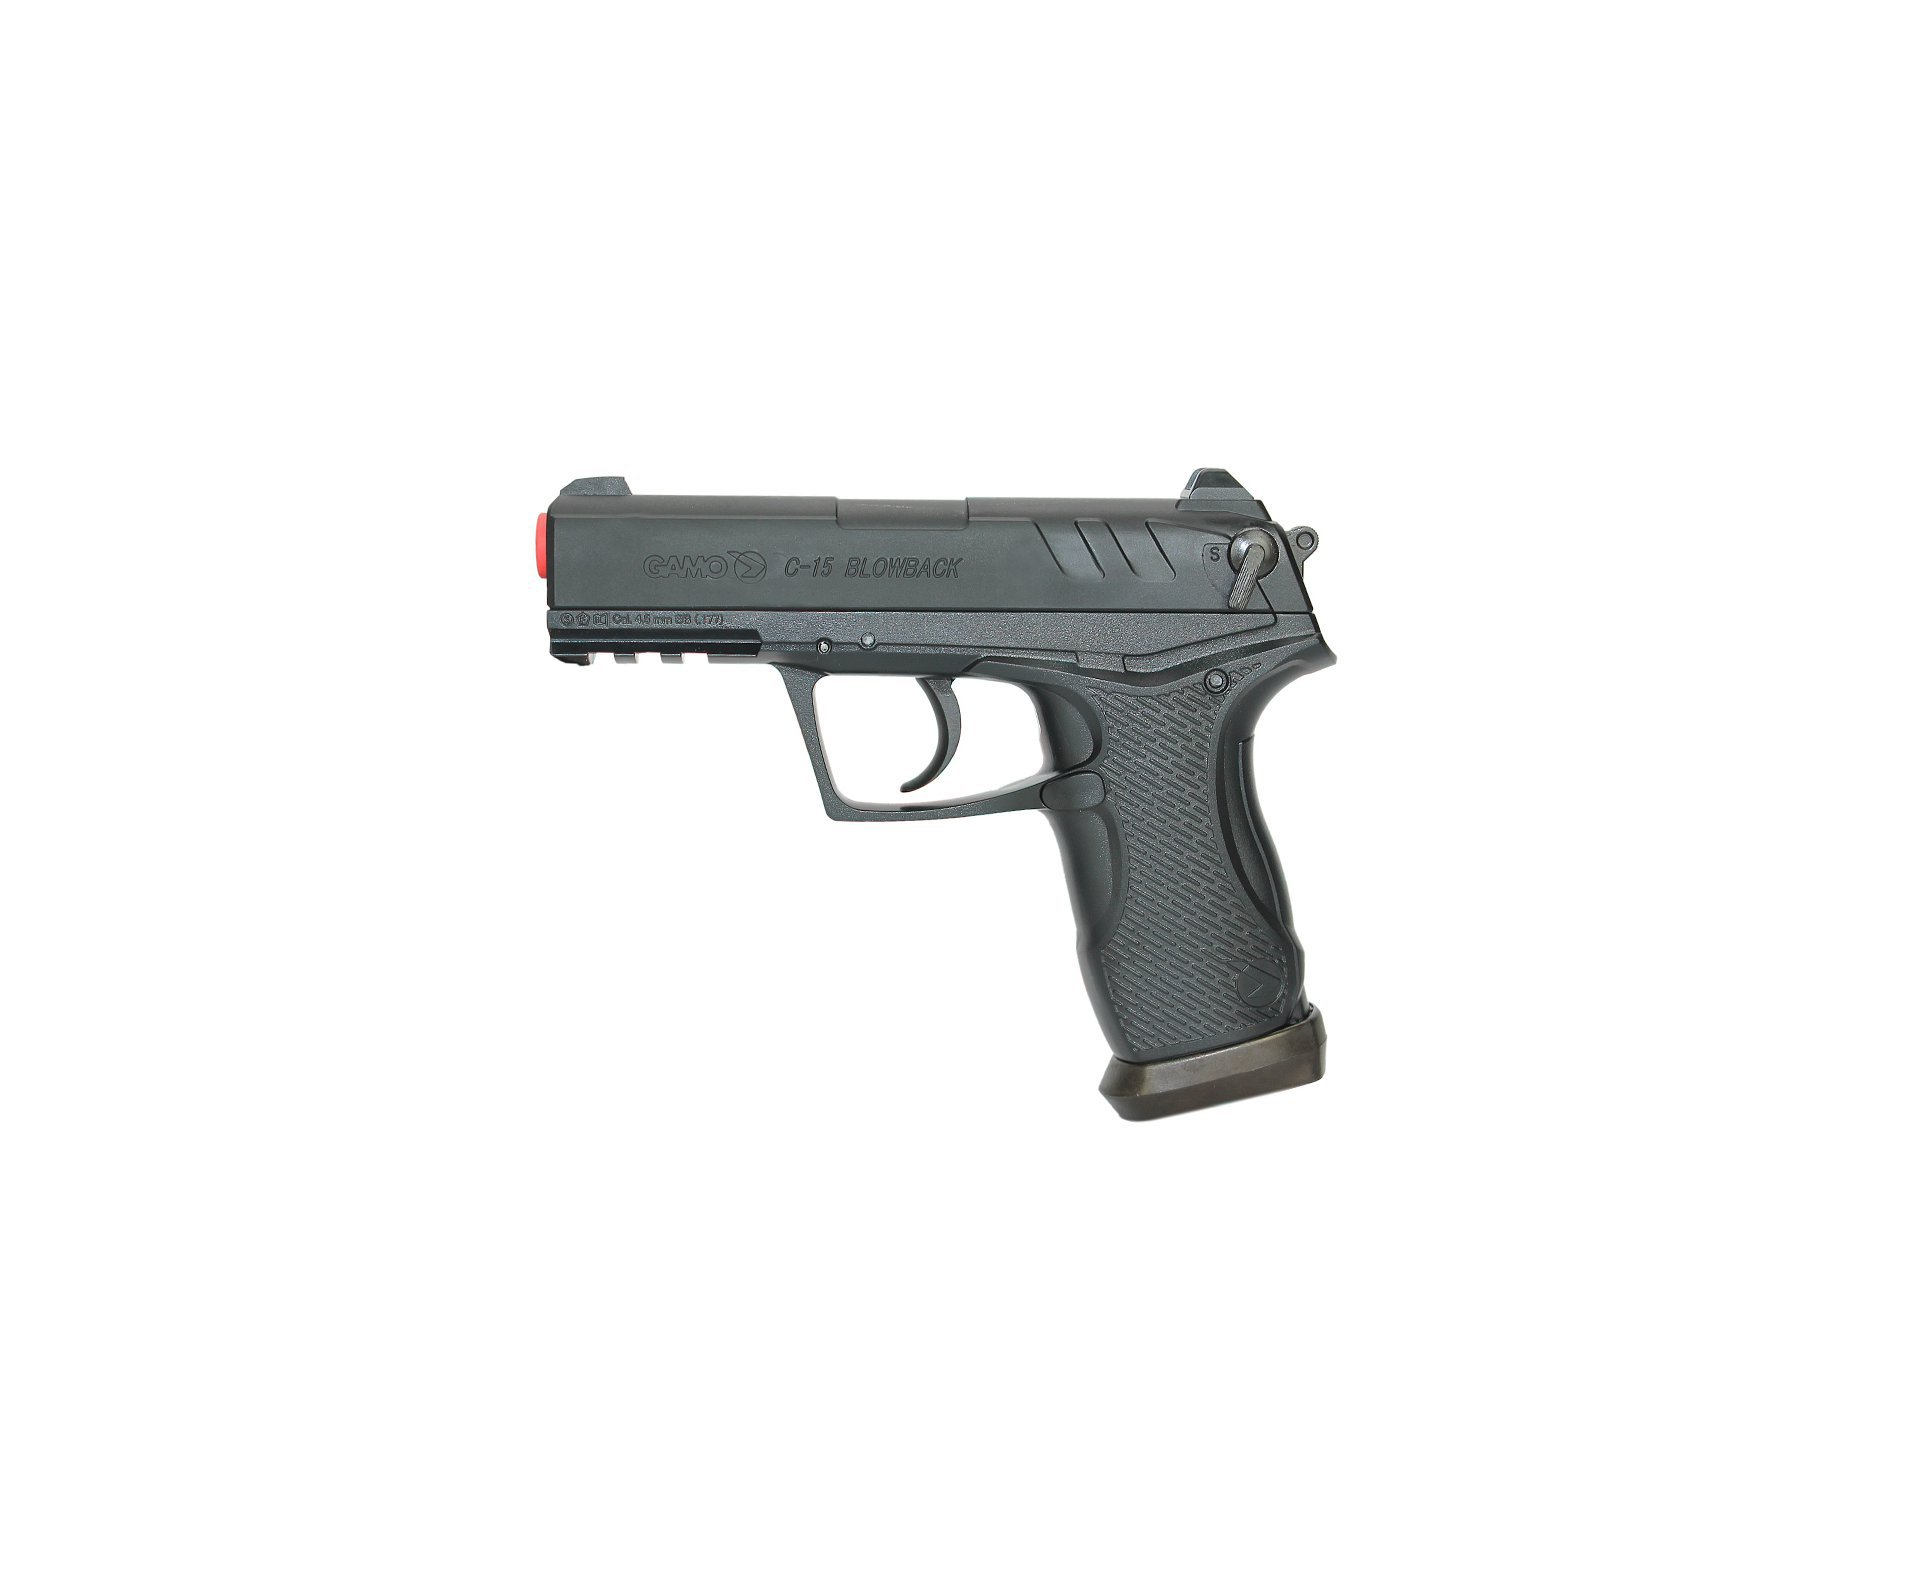 Pistola De Co2 Gamo C15- Blowback Slide Metal Cal 4,5mm